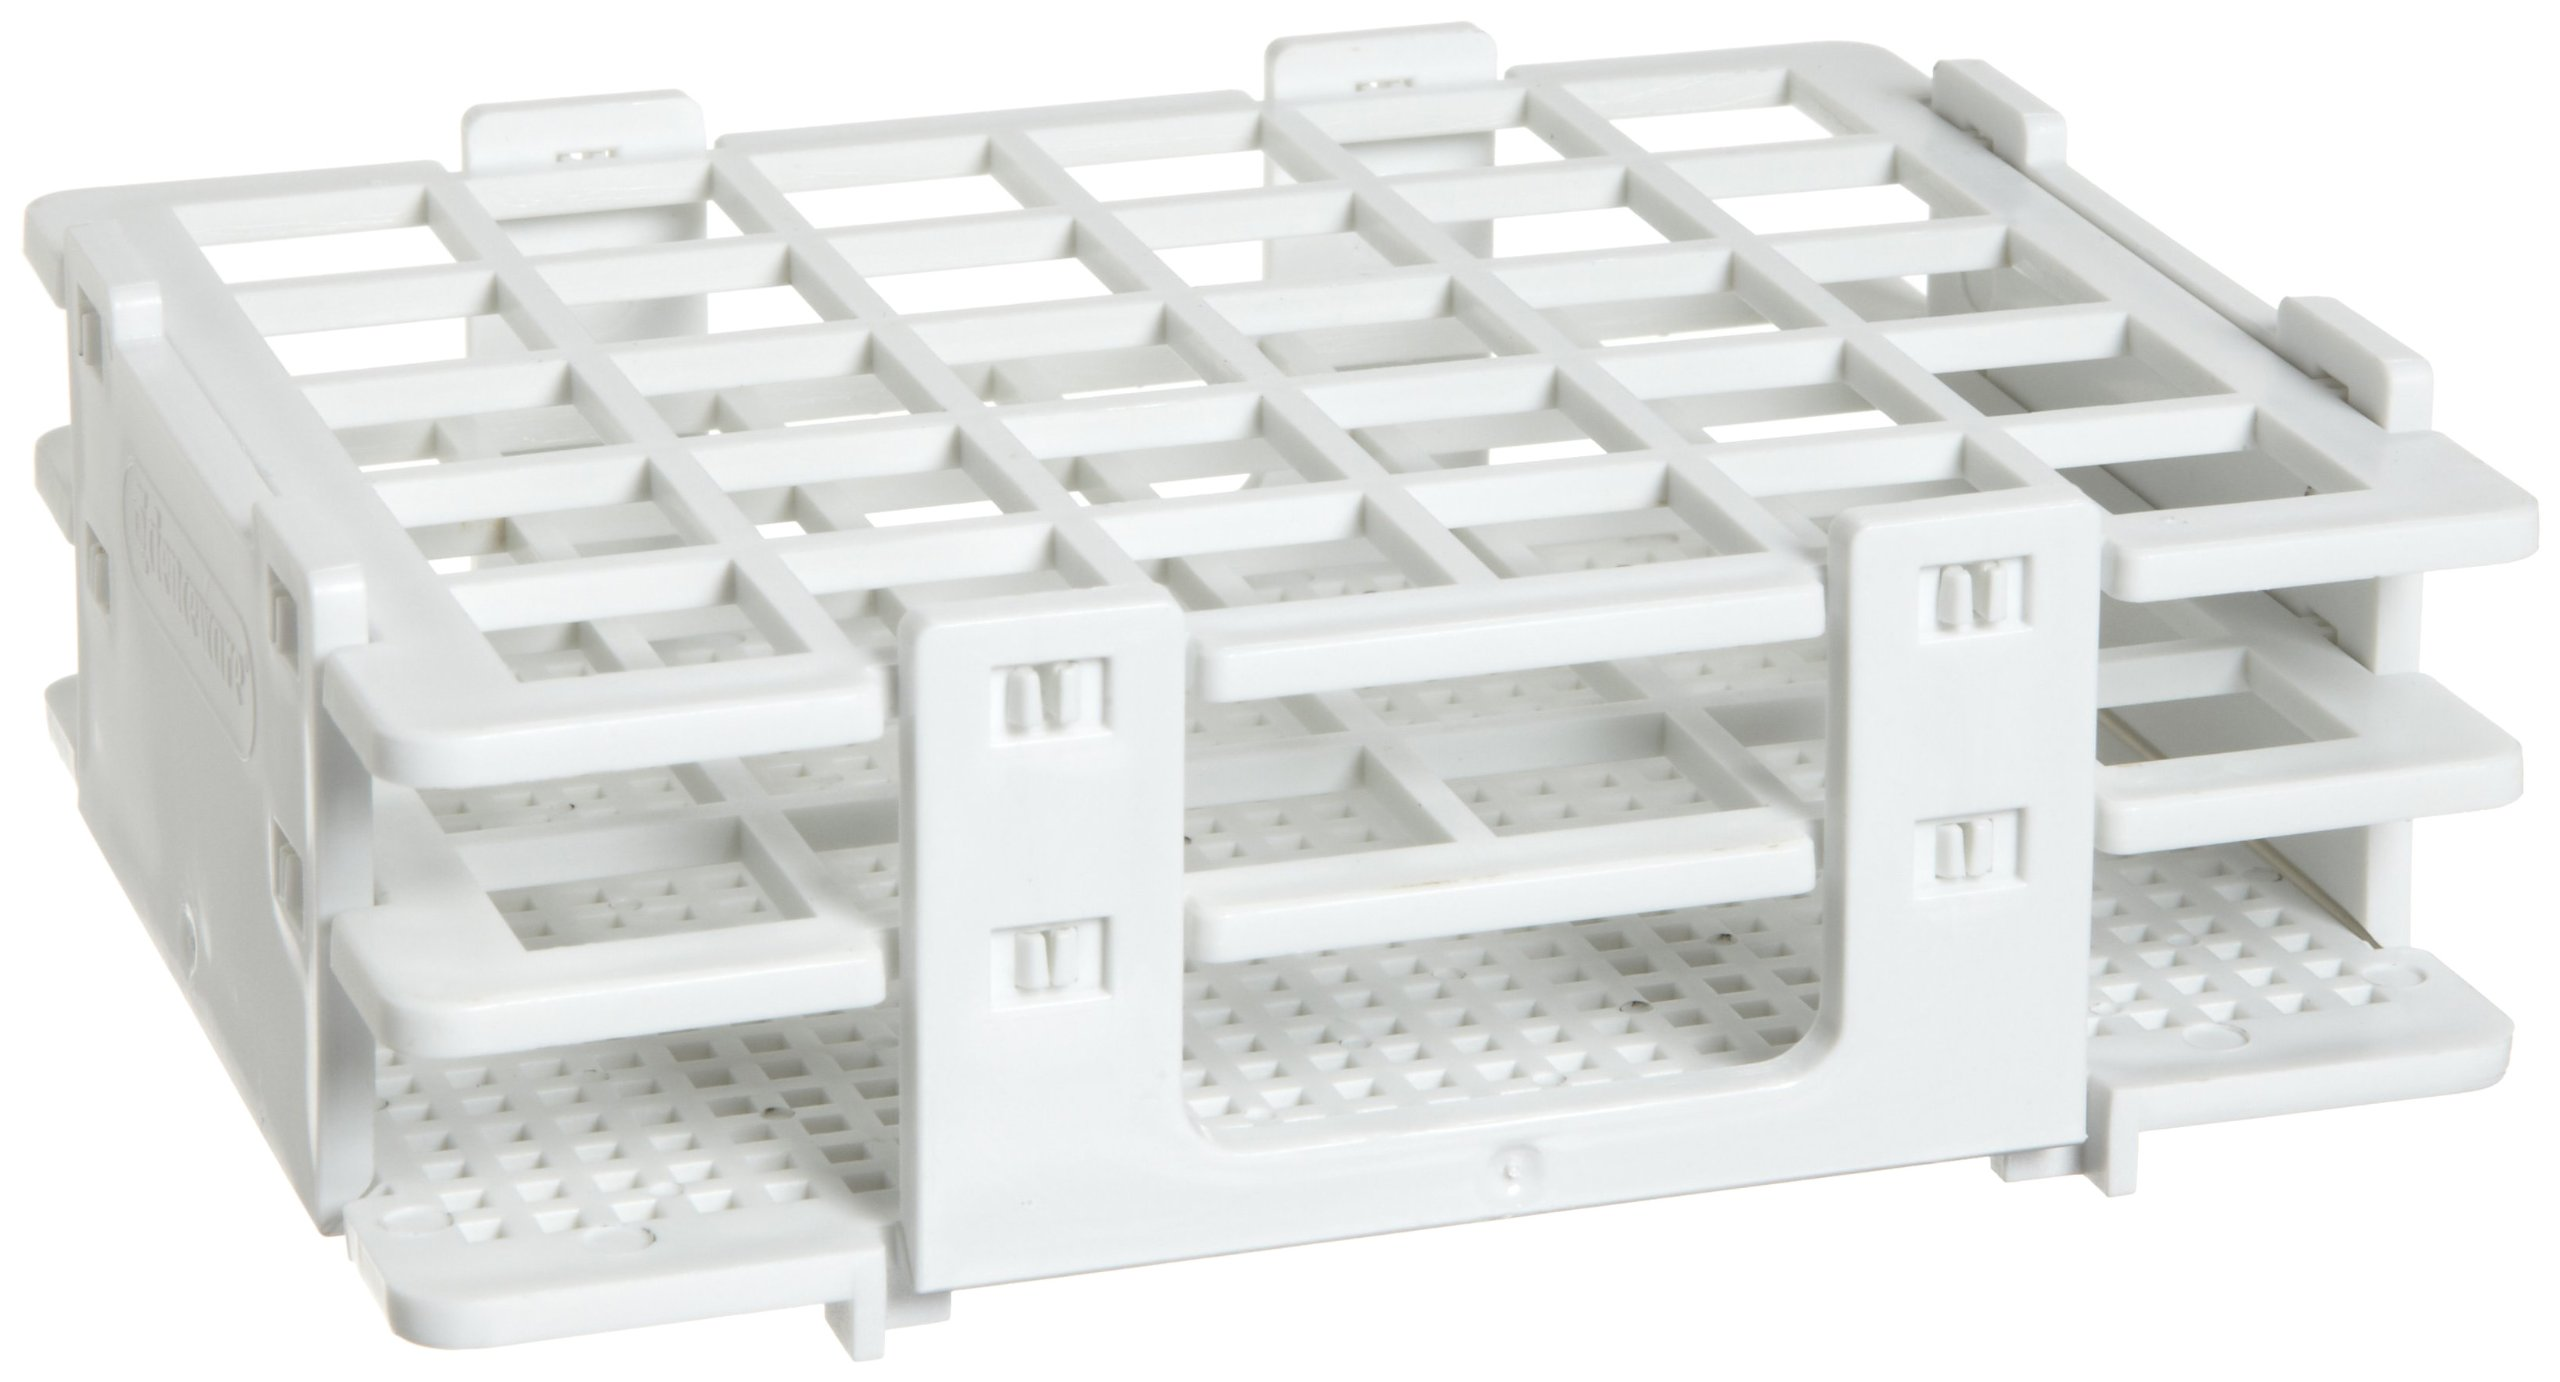 Bel-Art F18748-0016 No-Wire Test Tube Half Rack; 13-16mm, 30 Places, 5.1 x 4.1 x 2.8 in., Polypropylene